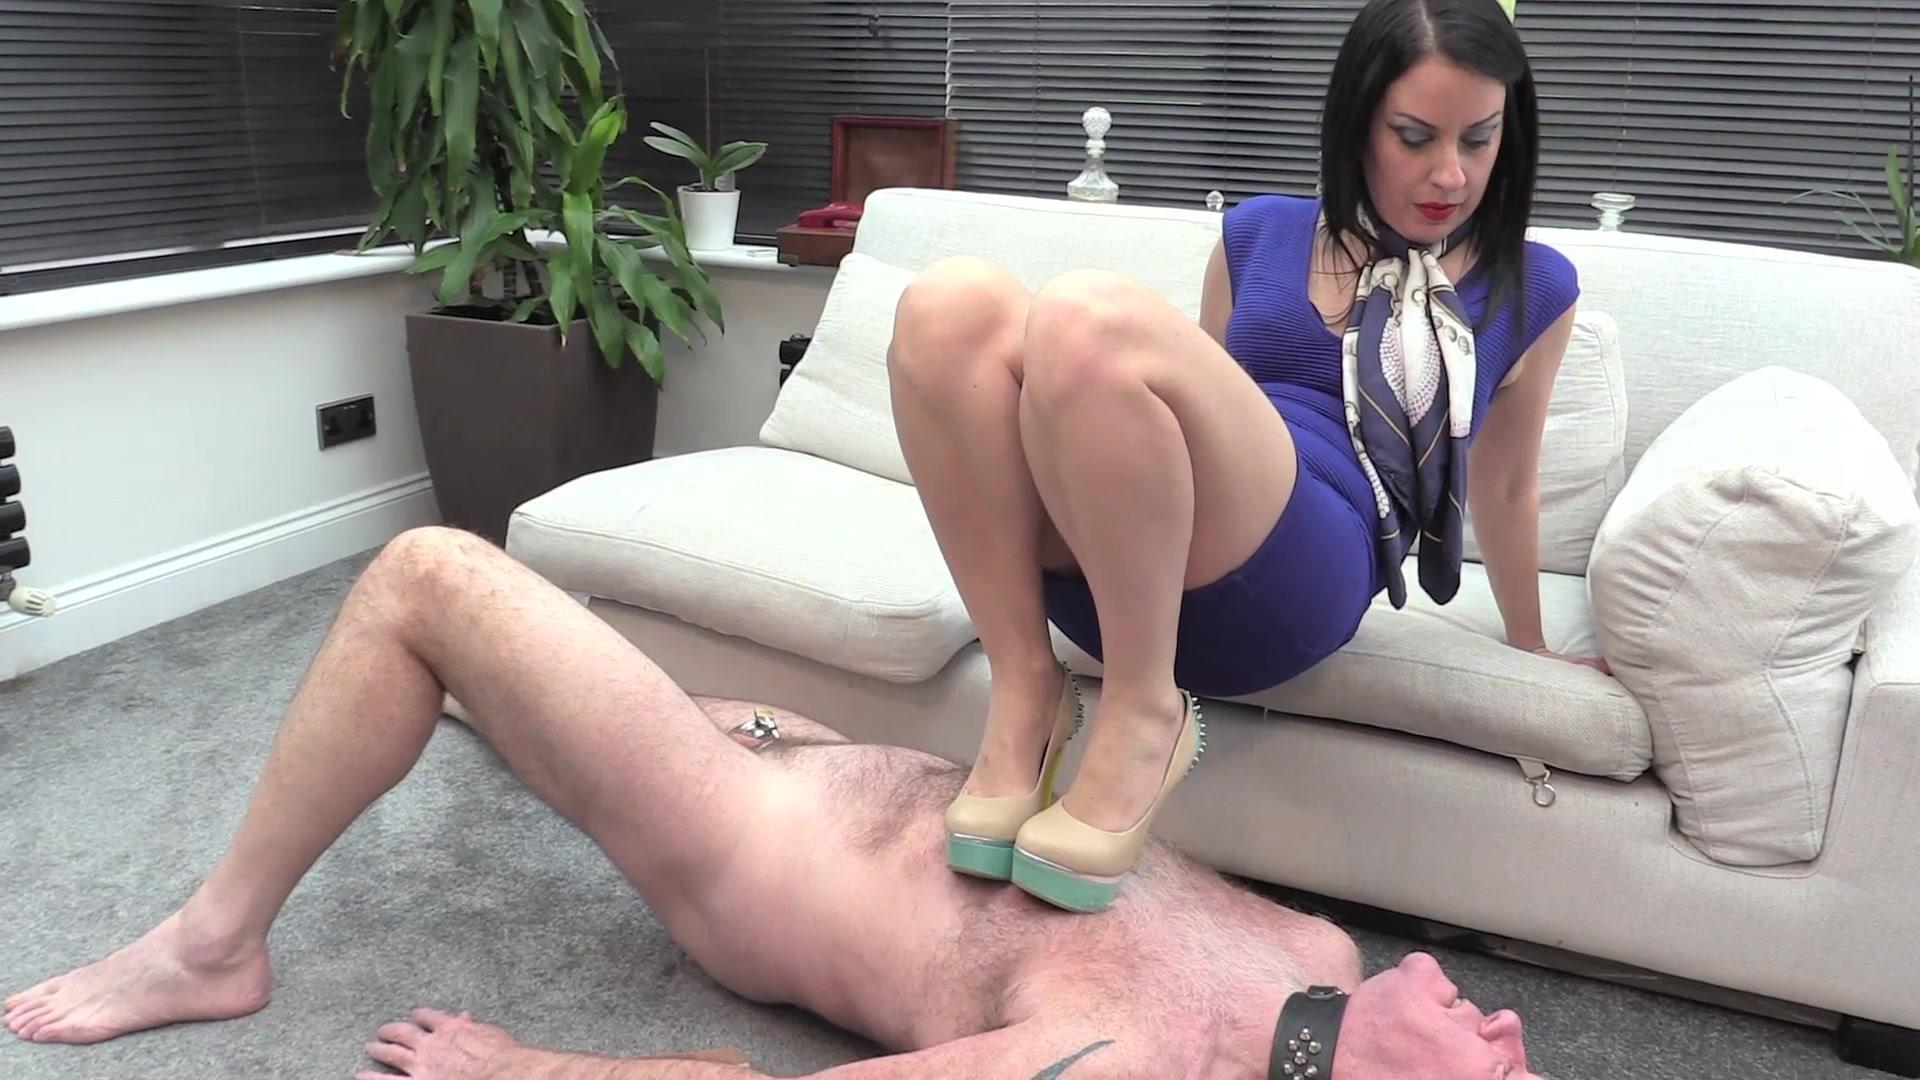 Lady Bellatrix Foot Fetish - Stiletto Trampling (HD mp4) 0